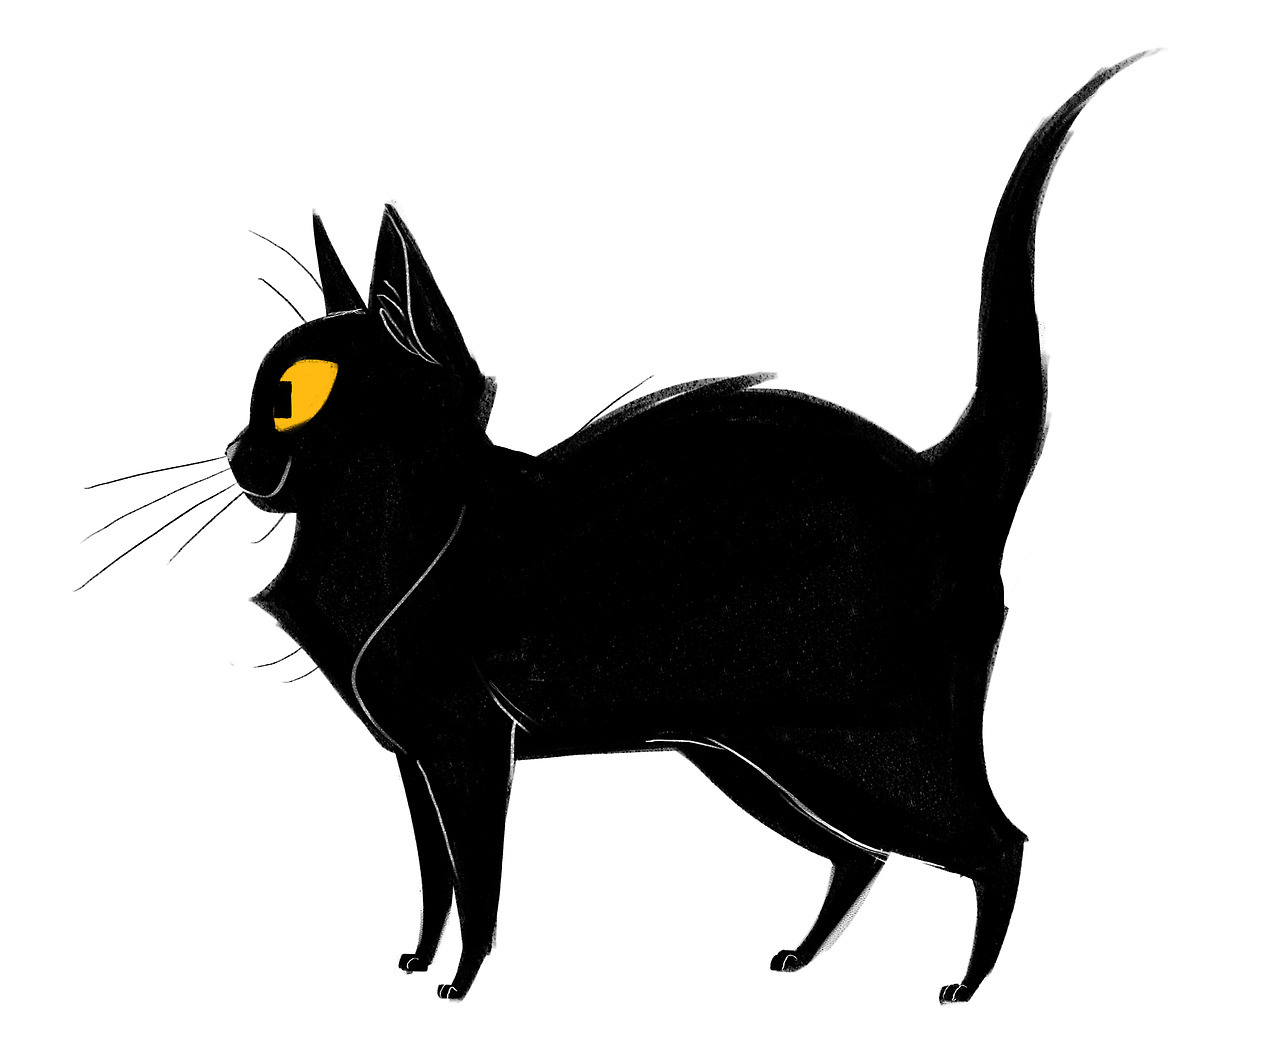 1280x1055 Cat Drawings Awesome Simple Cute Anime Abstract Black And White